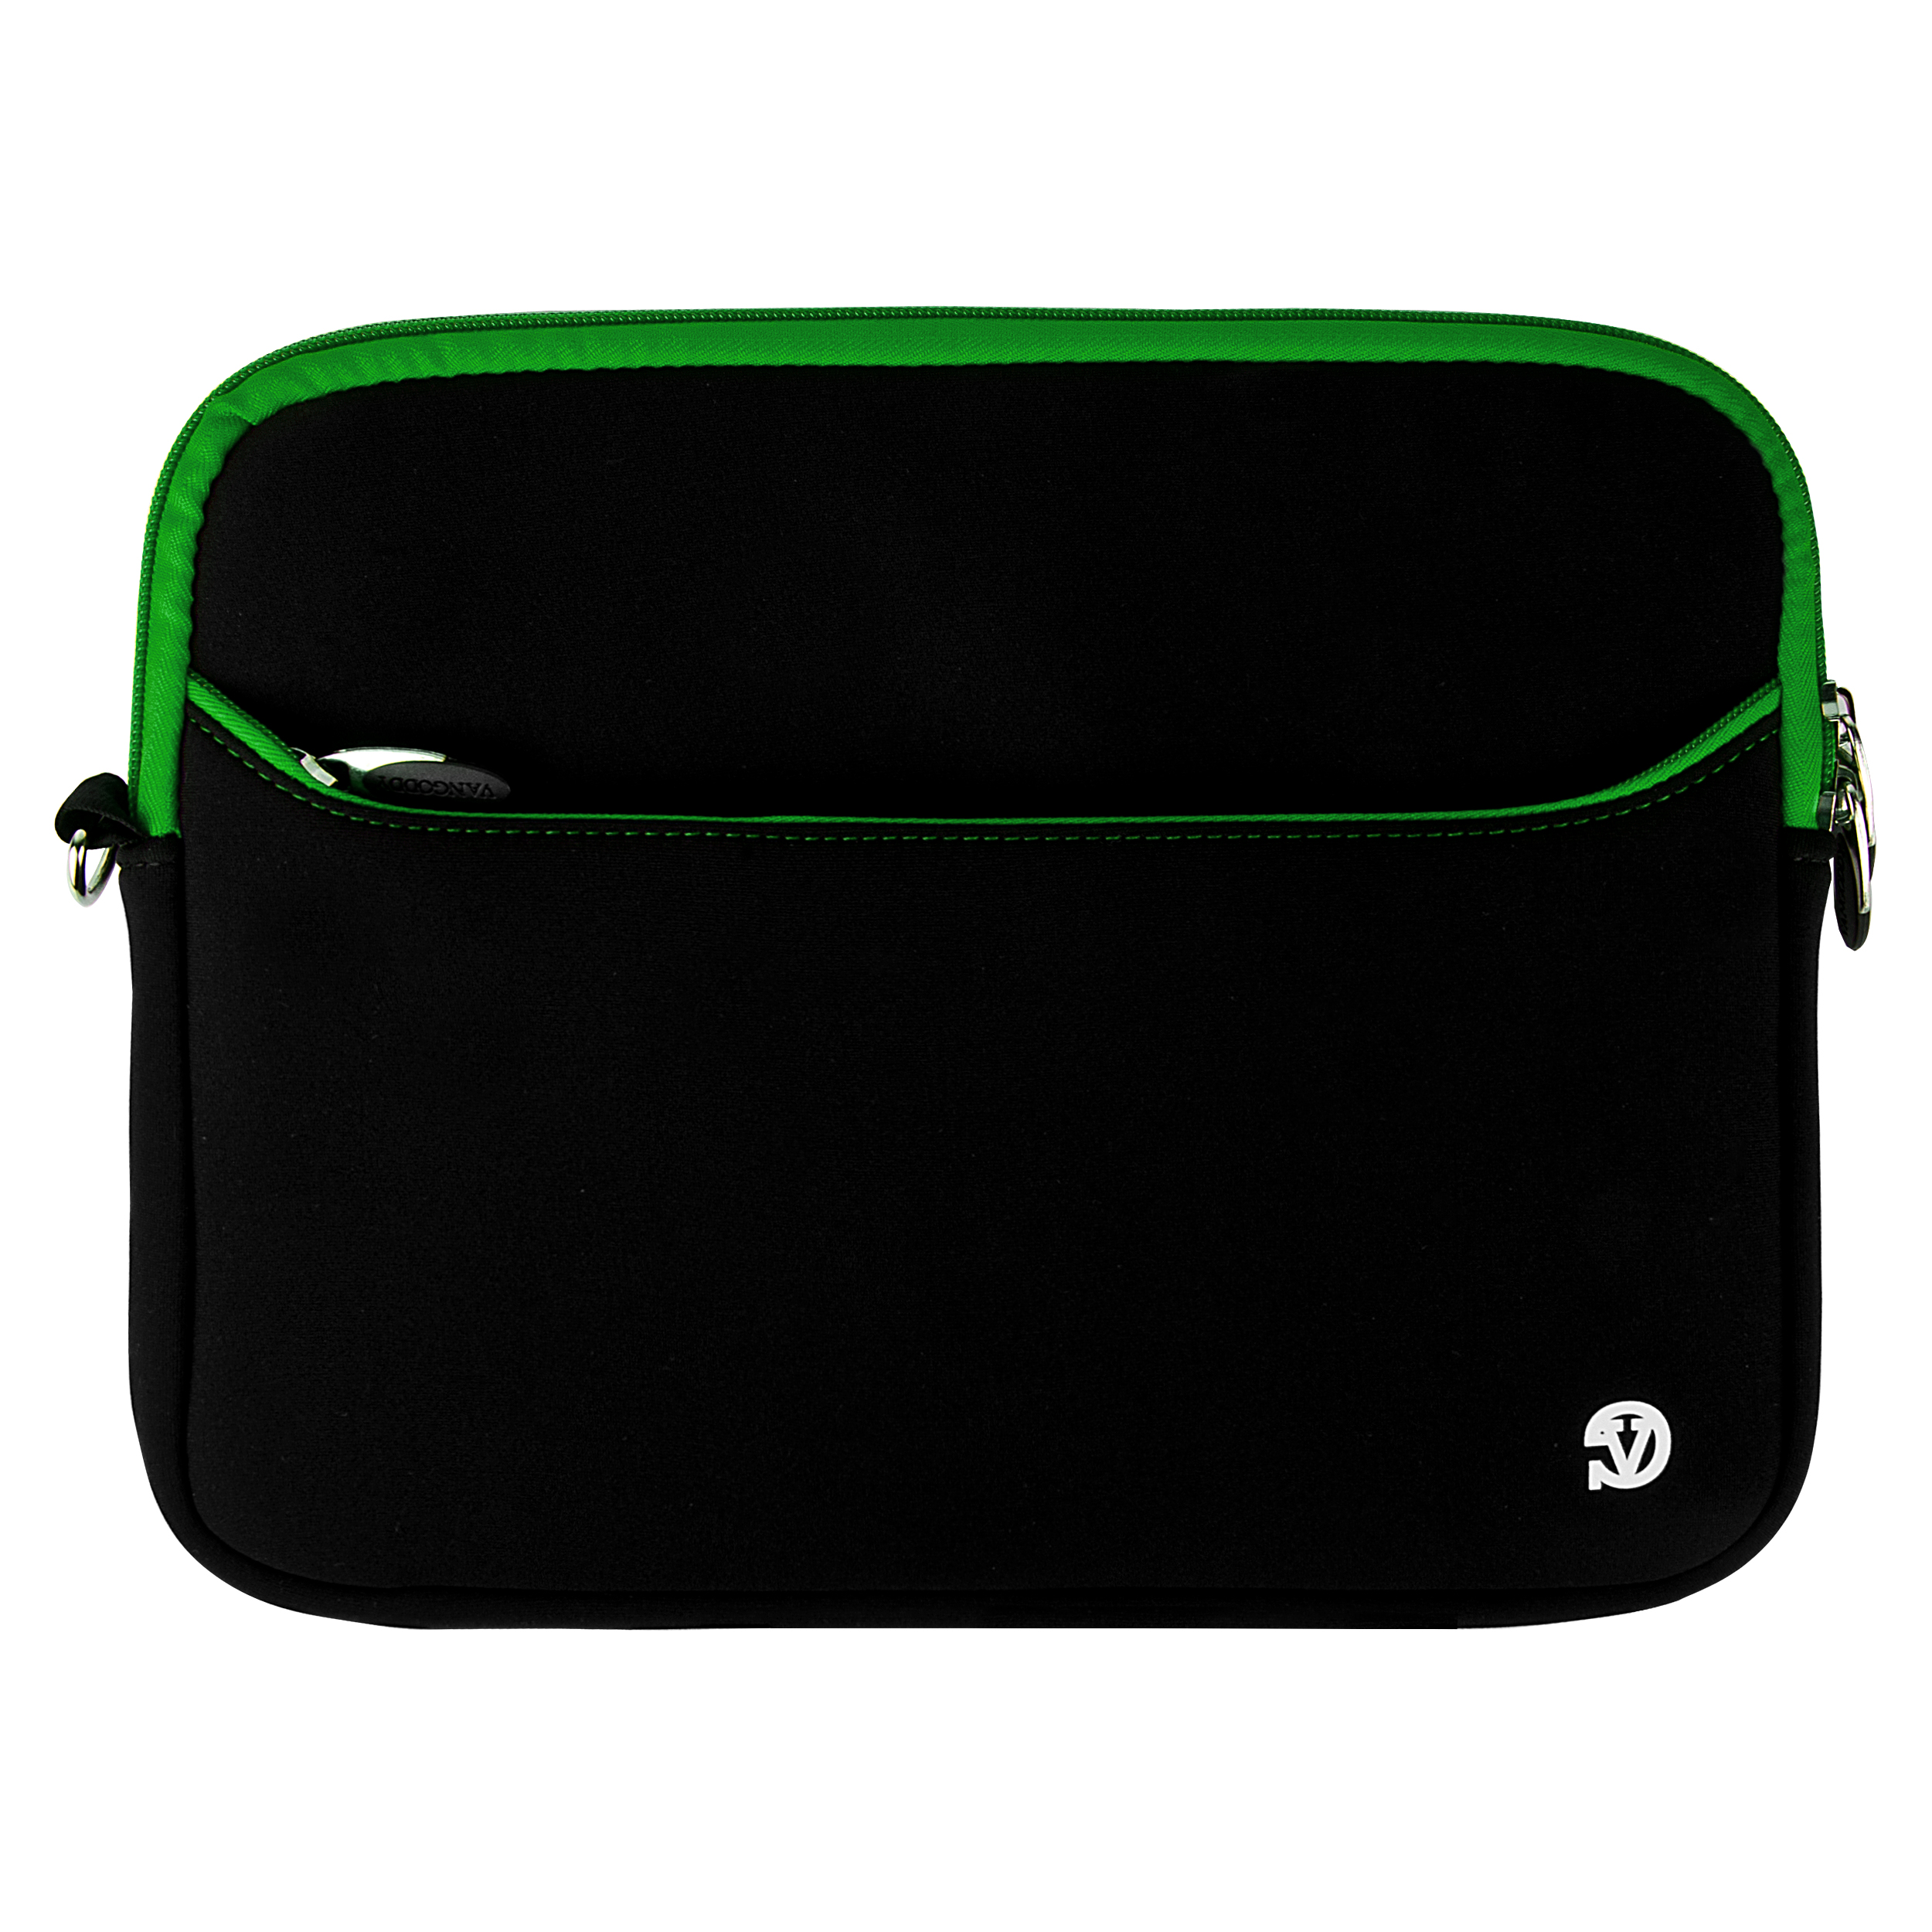 "Neoprene Sleeve 10"" (Black/Green Trim)"